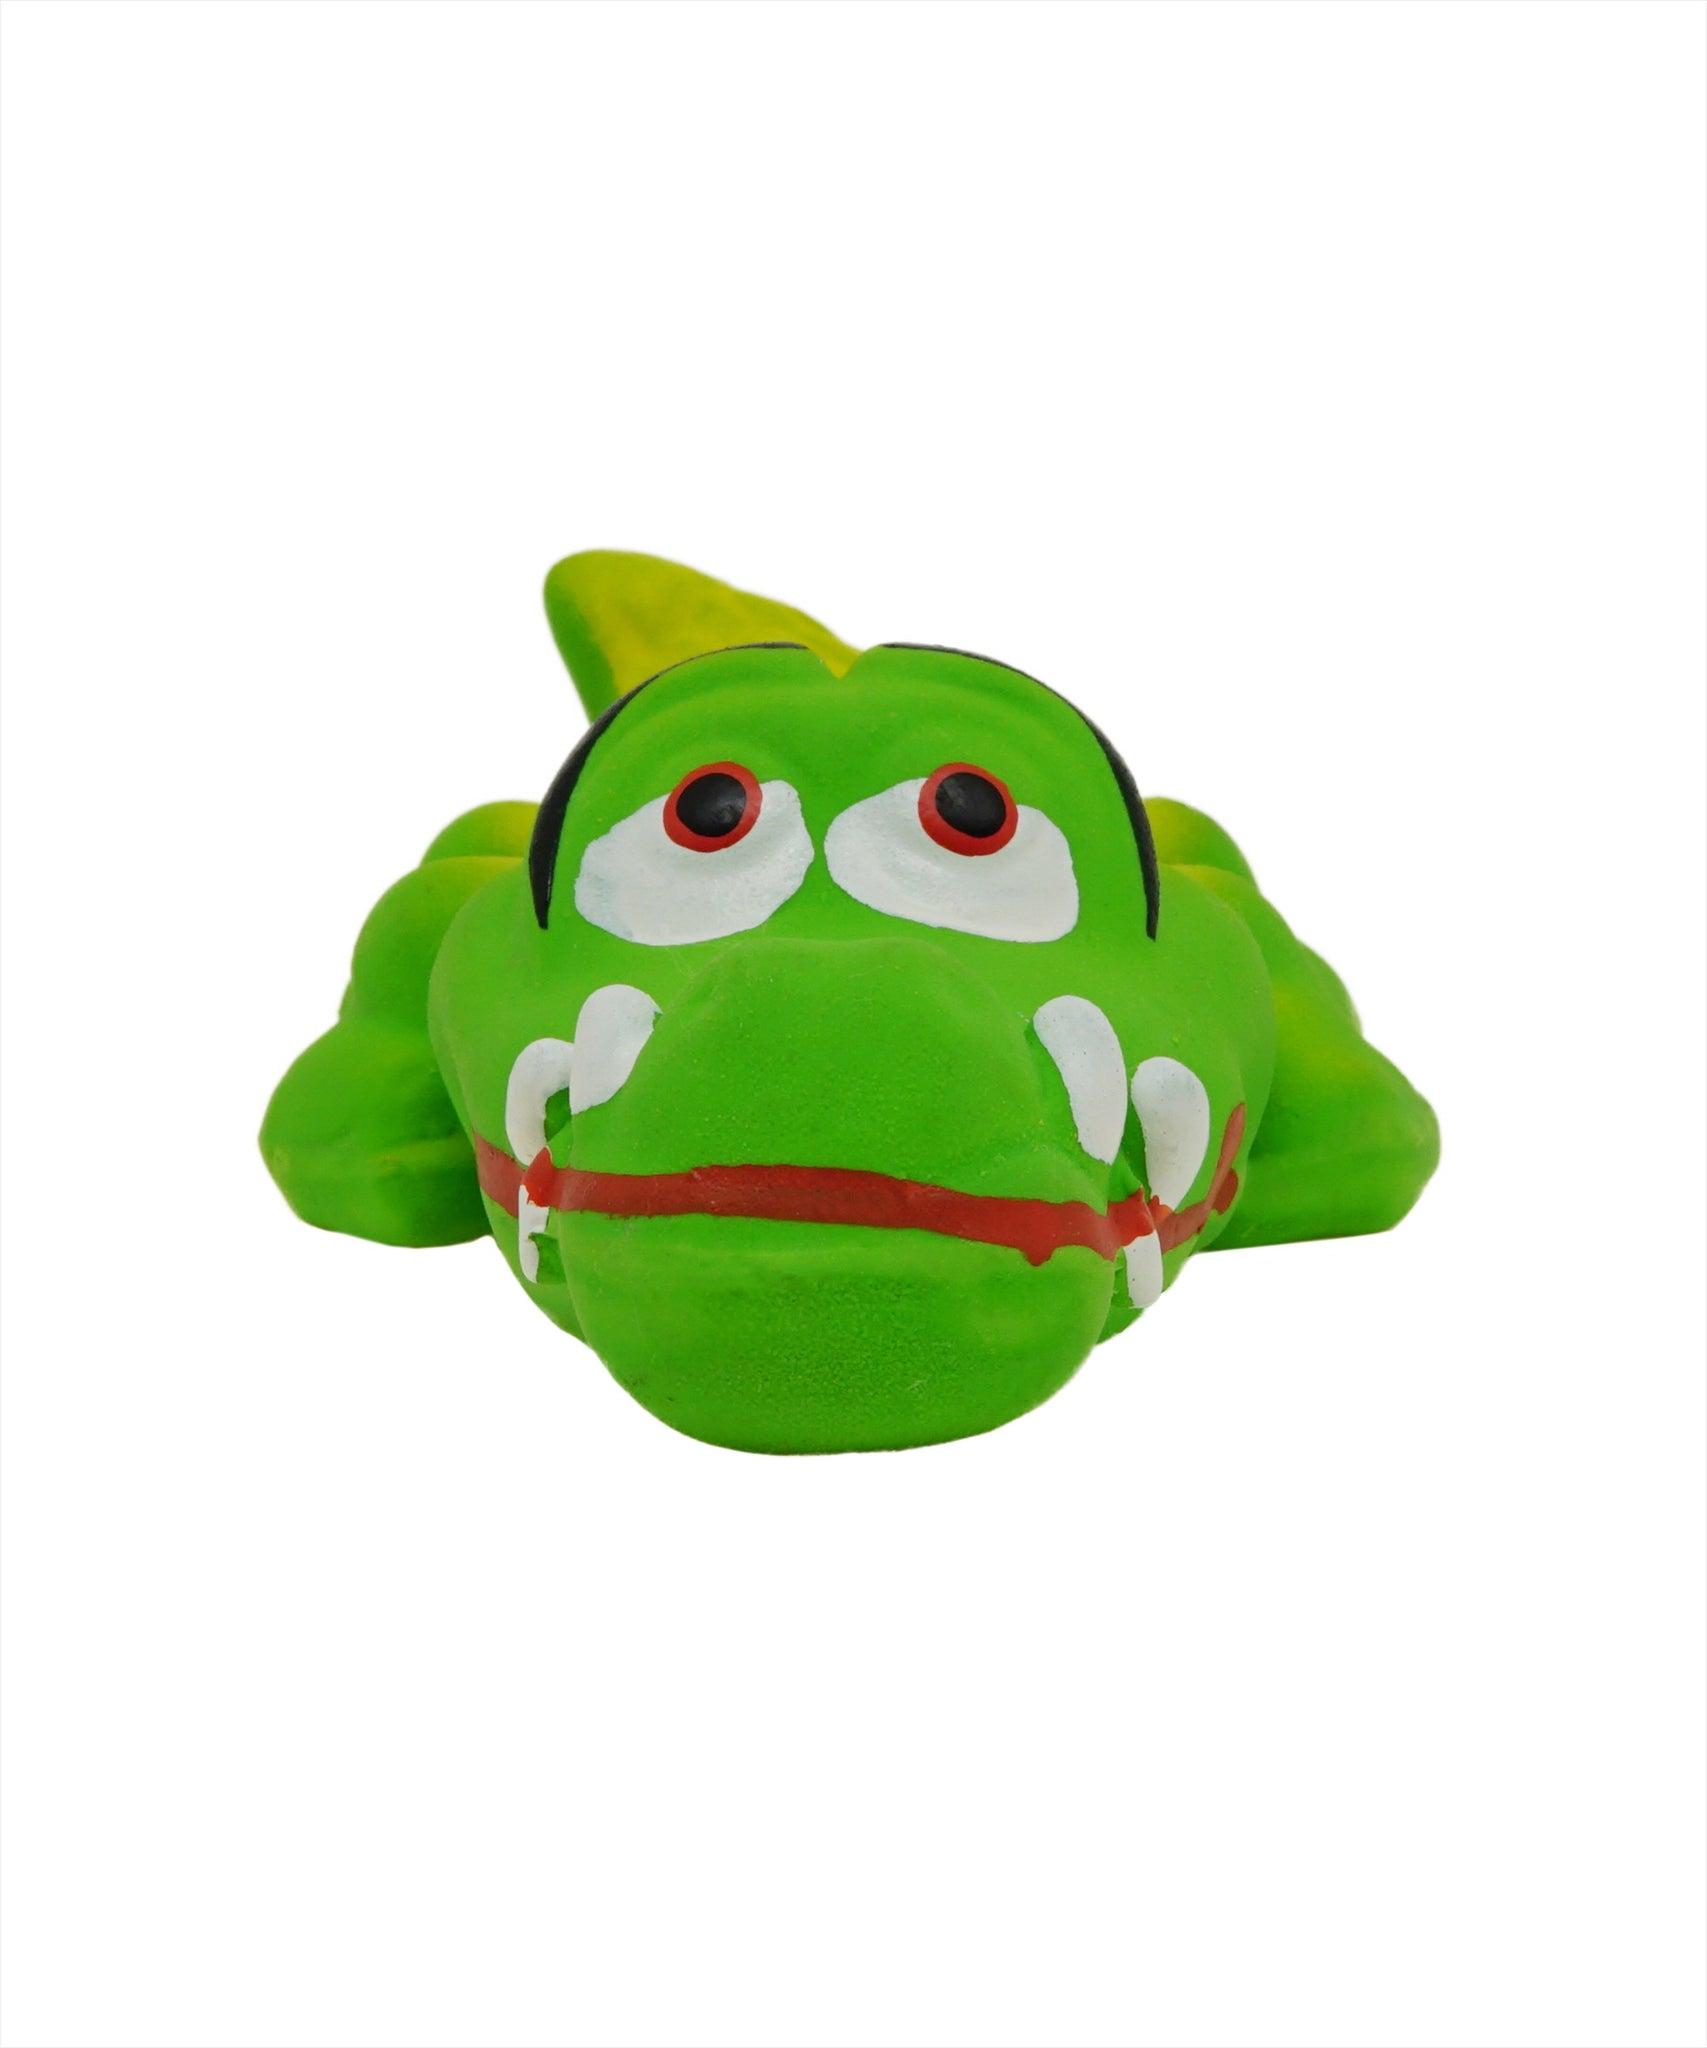 rubber crocodile toy for dogs 5